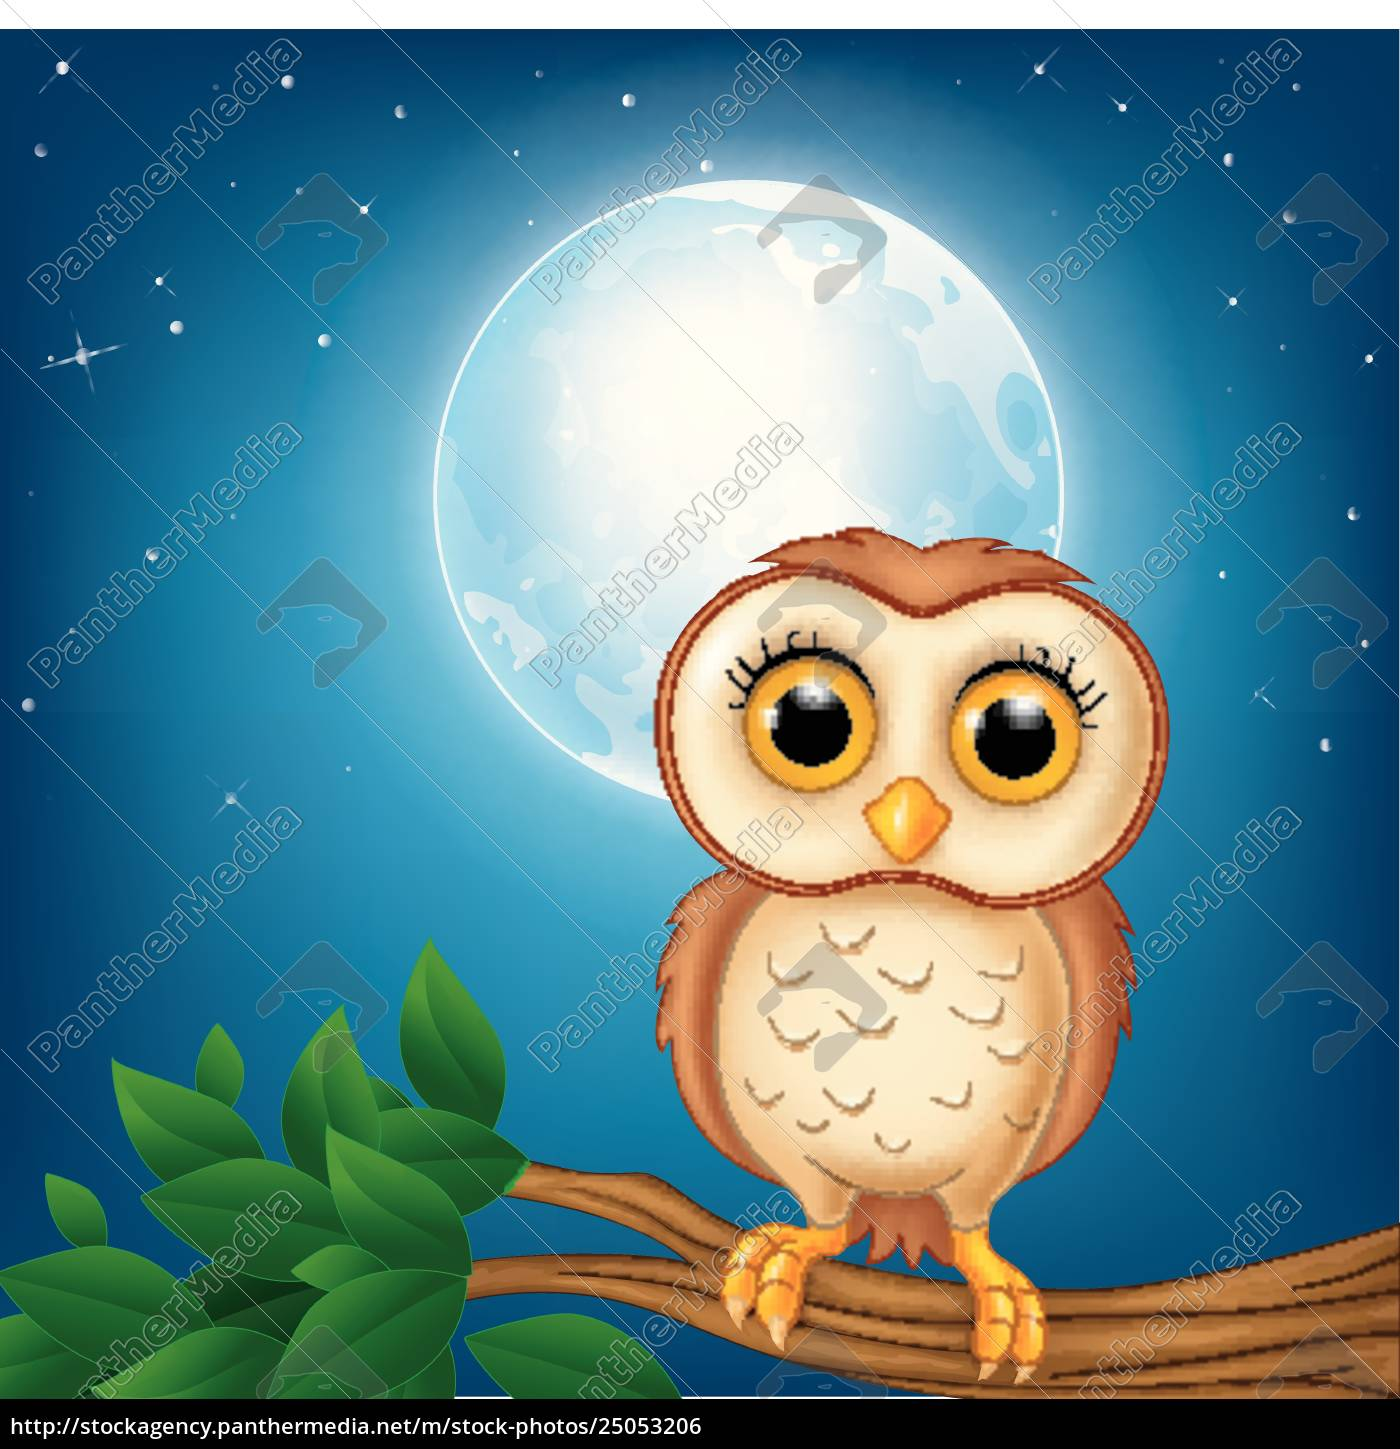 Cartoon Owl On The Tree Branch Stock Image 25053206 Panthermedia Stock Agency See more ideas about owl, owl cartoon, owl crafts. https stockagency panthermedia net m stock photos 25053206 cartoon owl on the tree branch